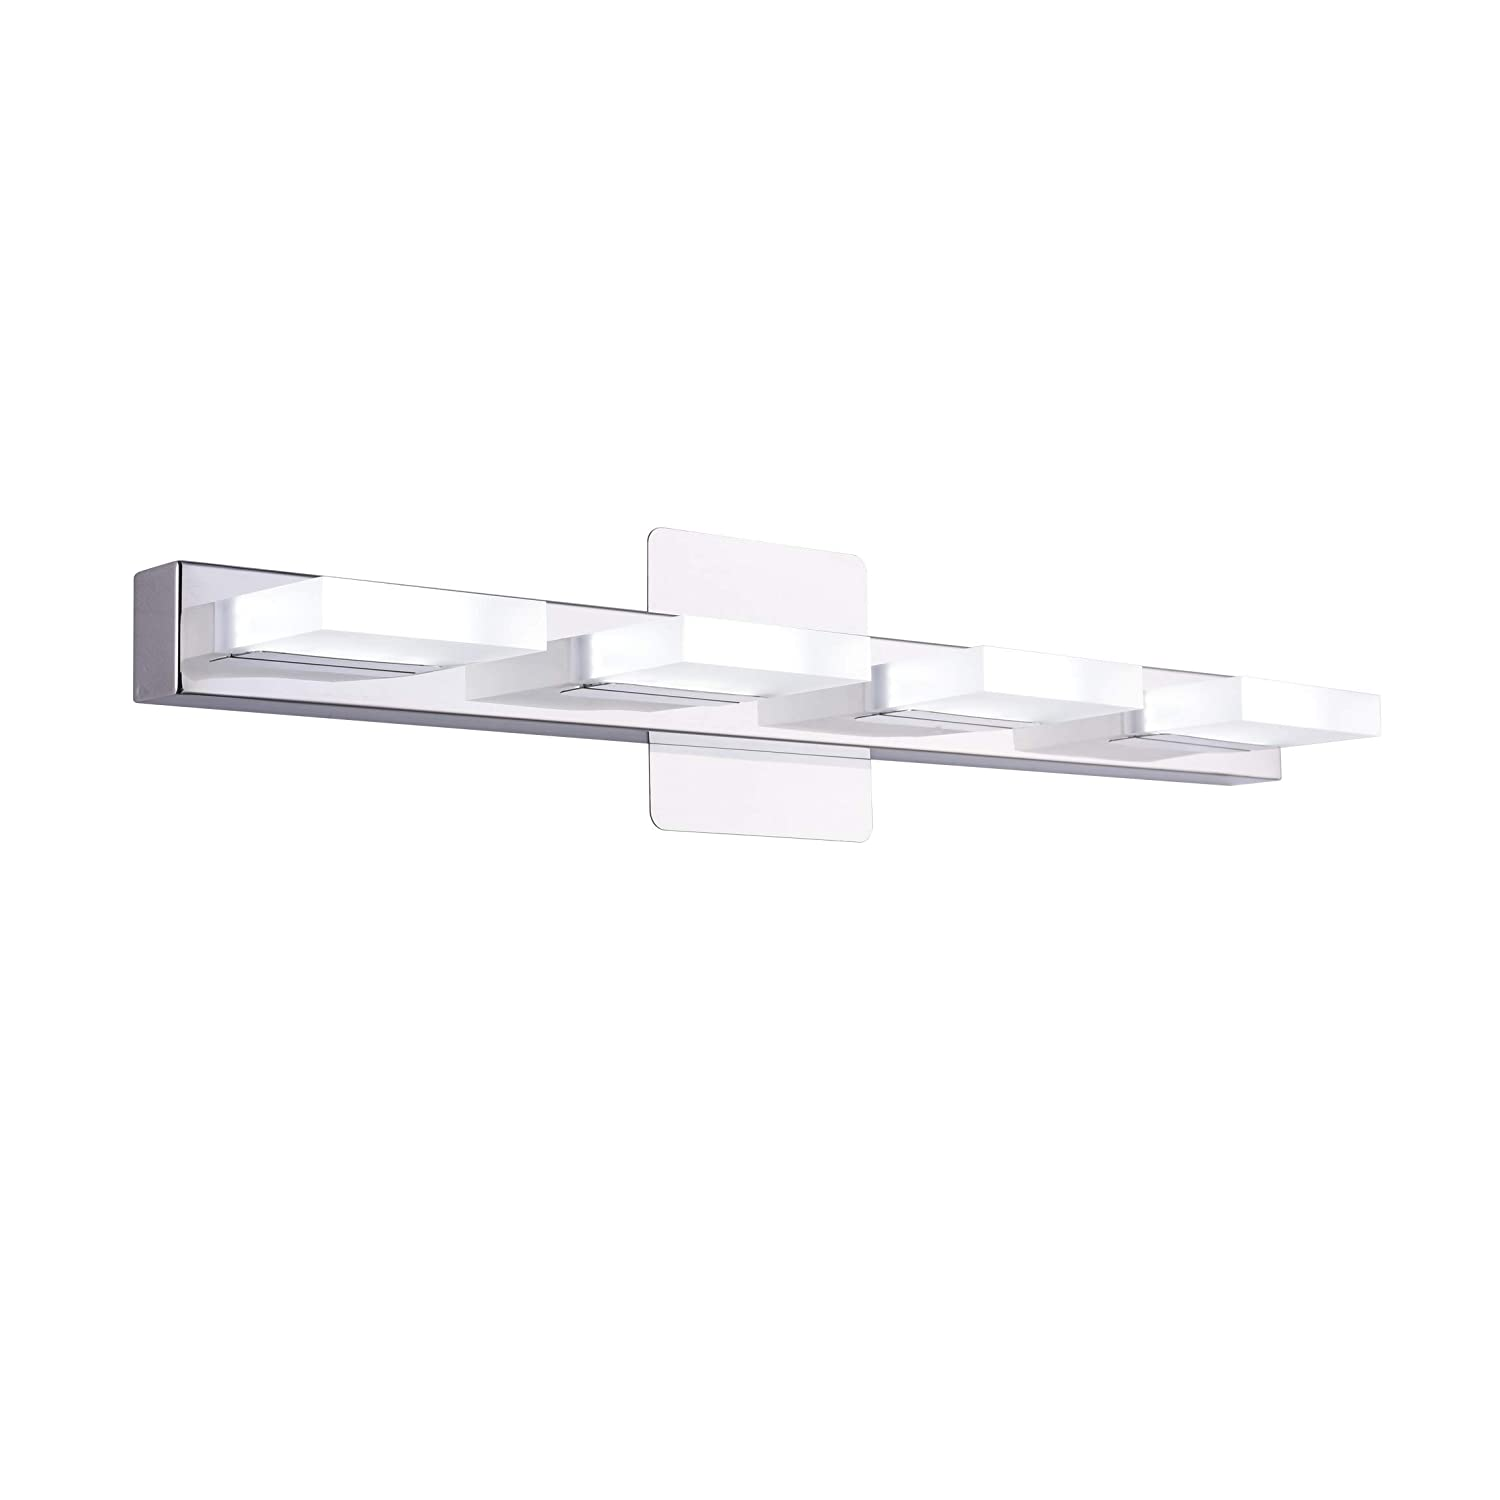 Nuvo 60 298 36-Inch Six Light Vanity Strip, Polished Chrome